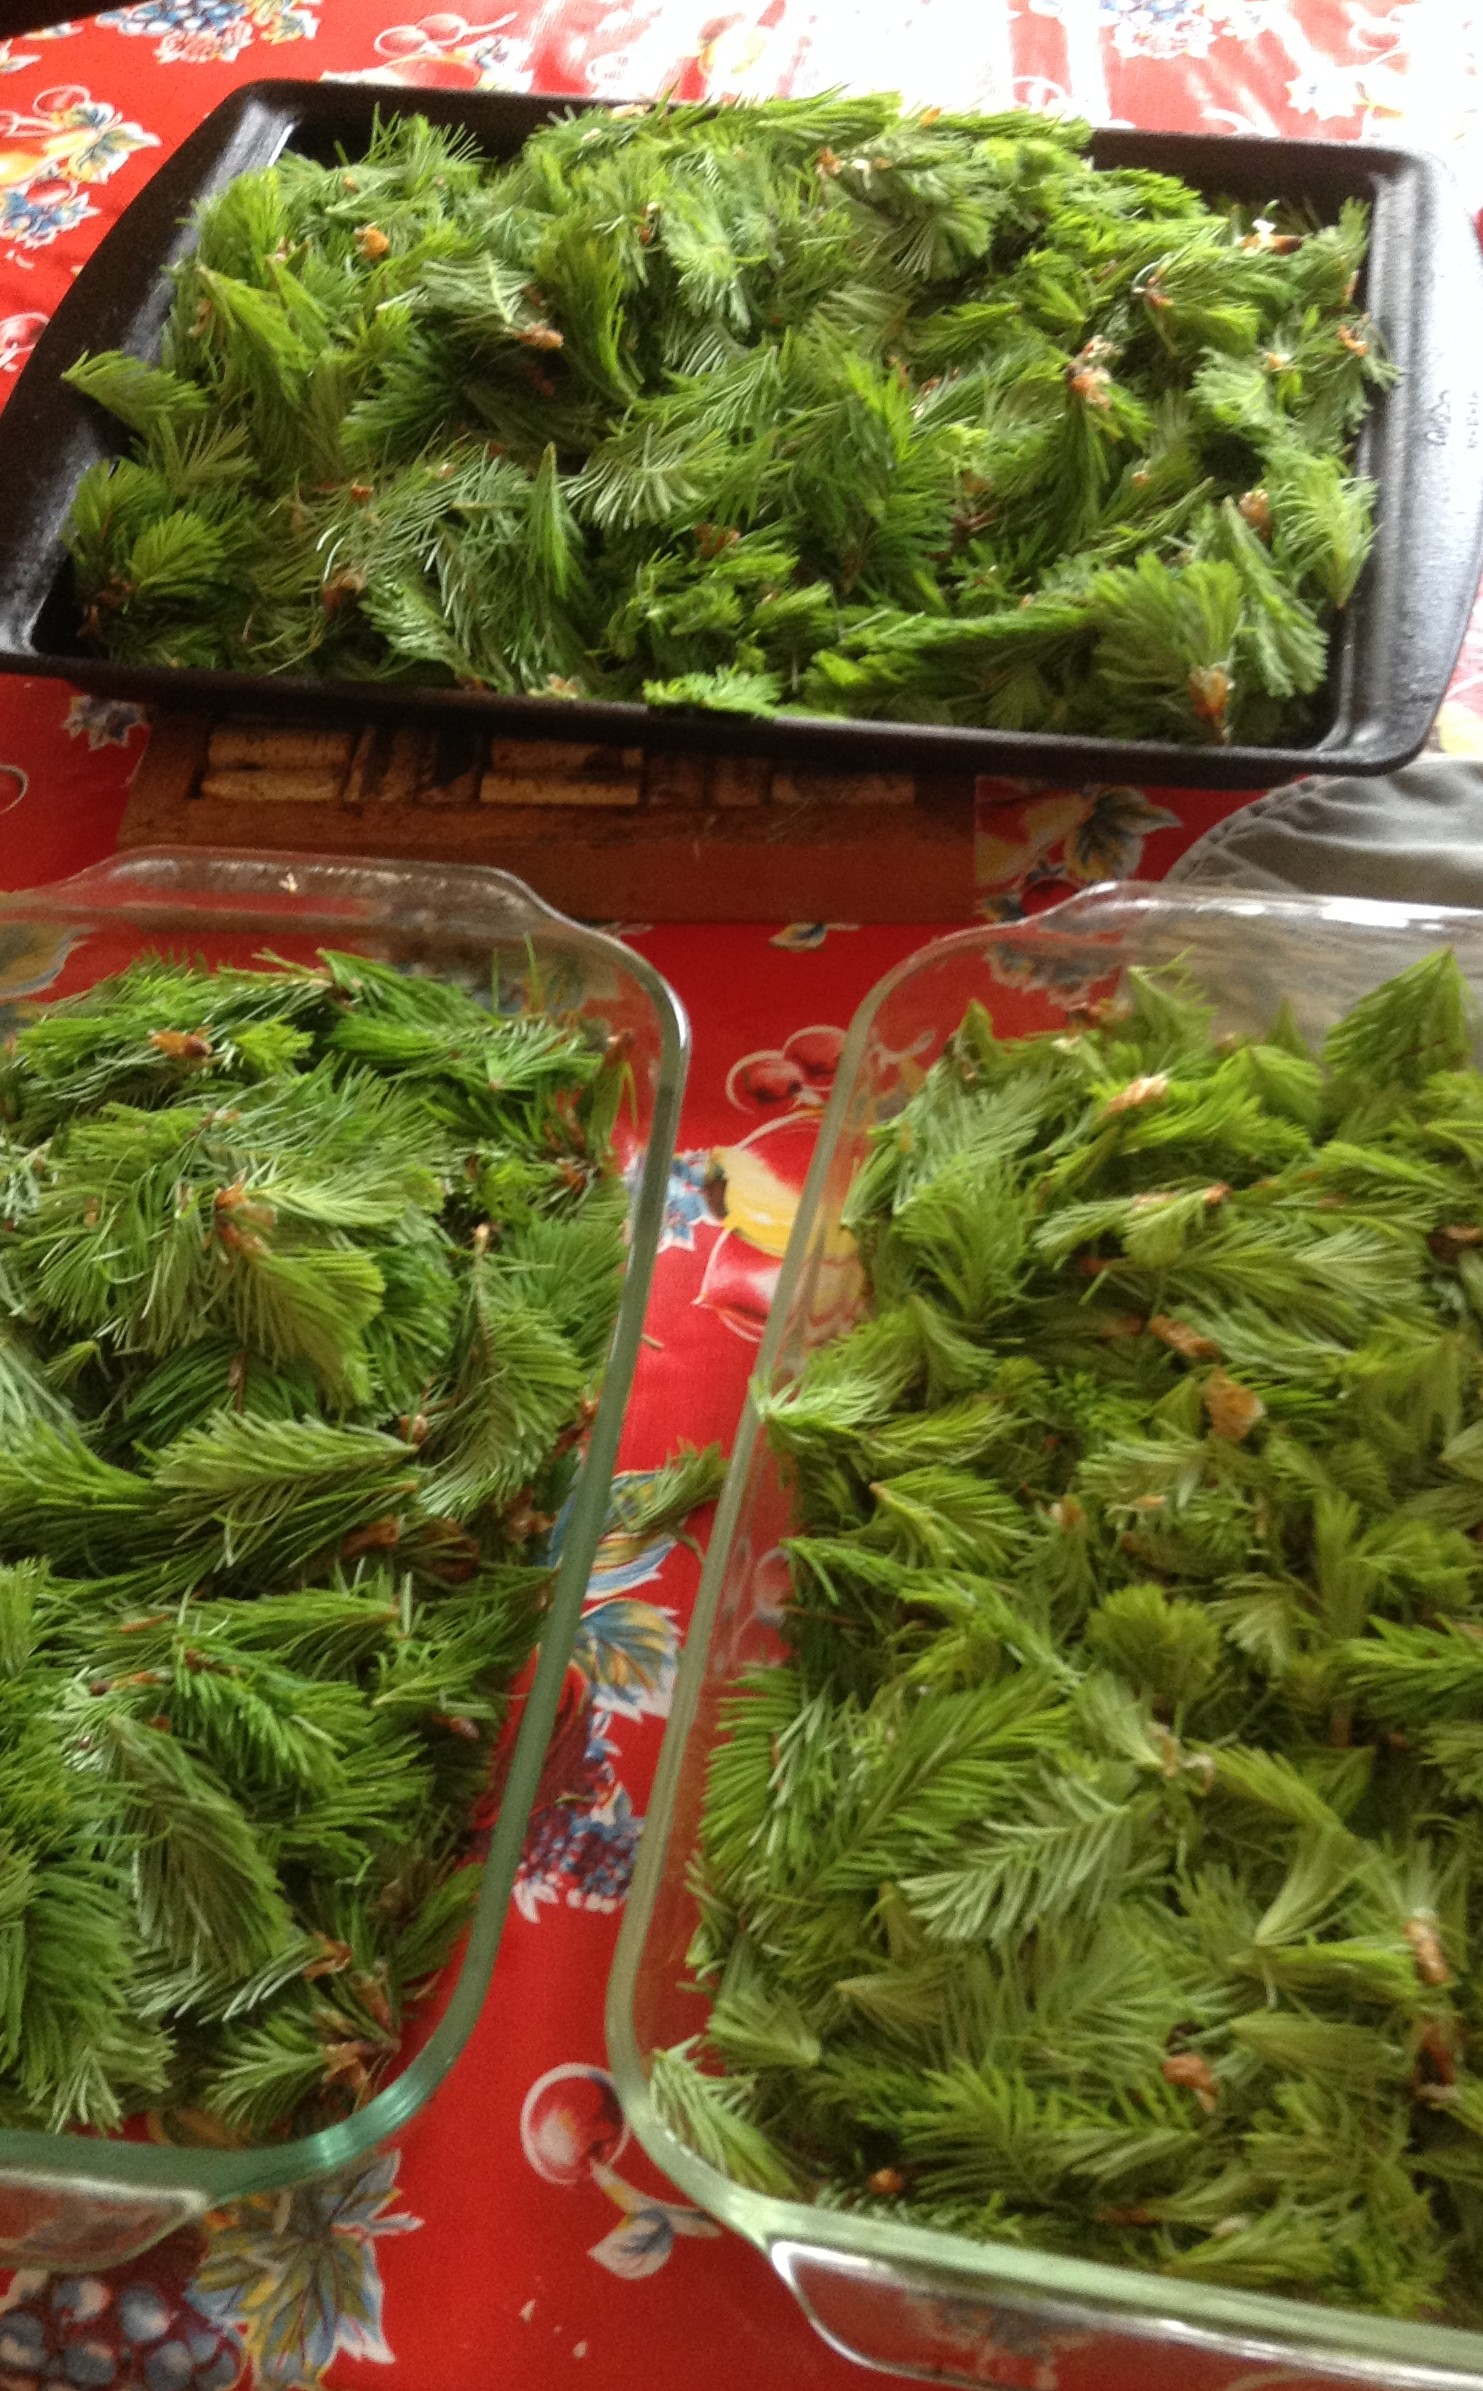 Image of Douglas Fir spring tips prior to oven drying.